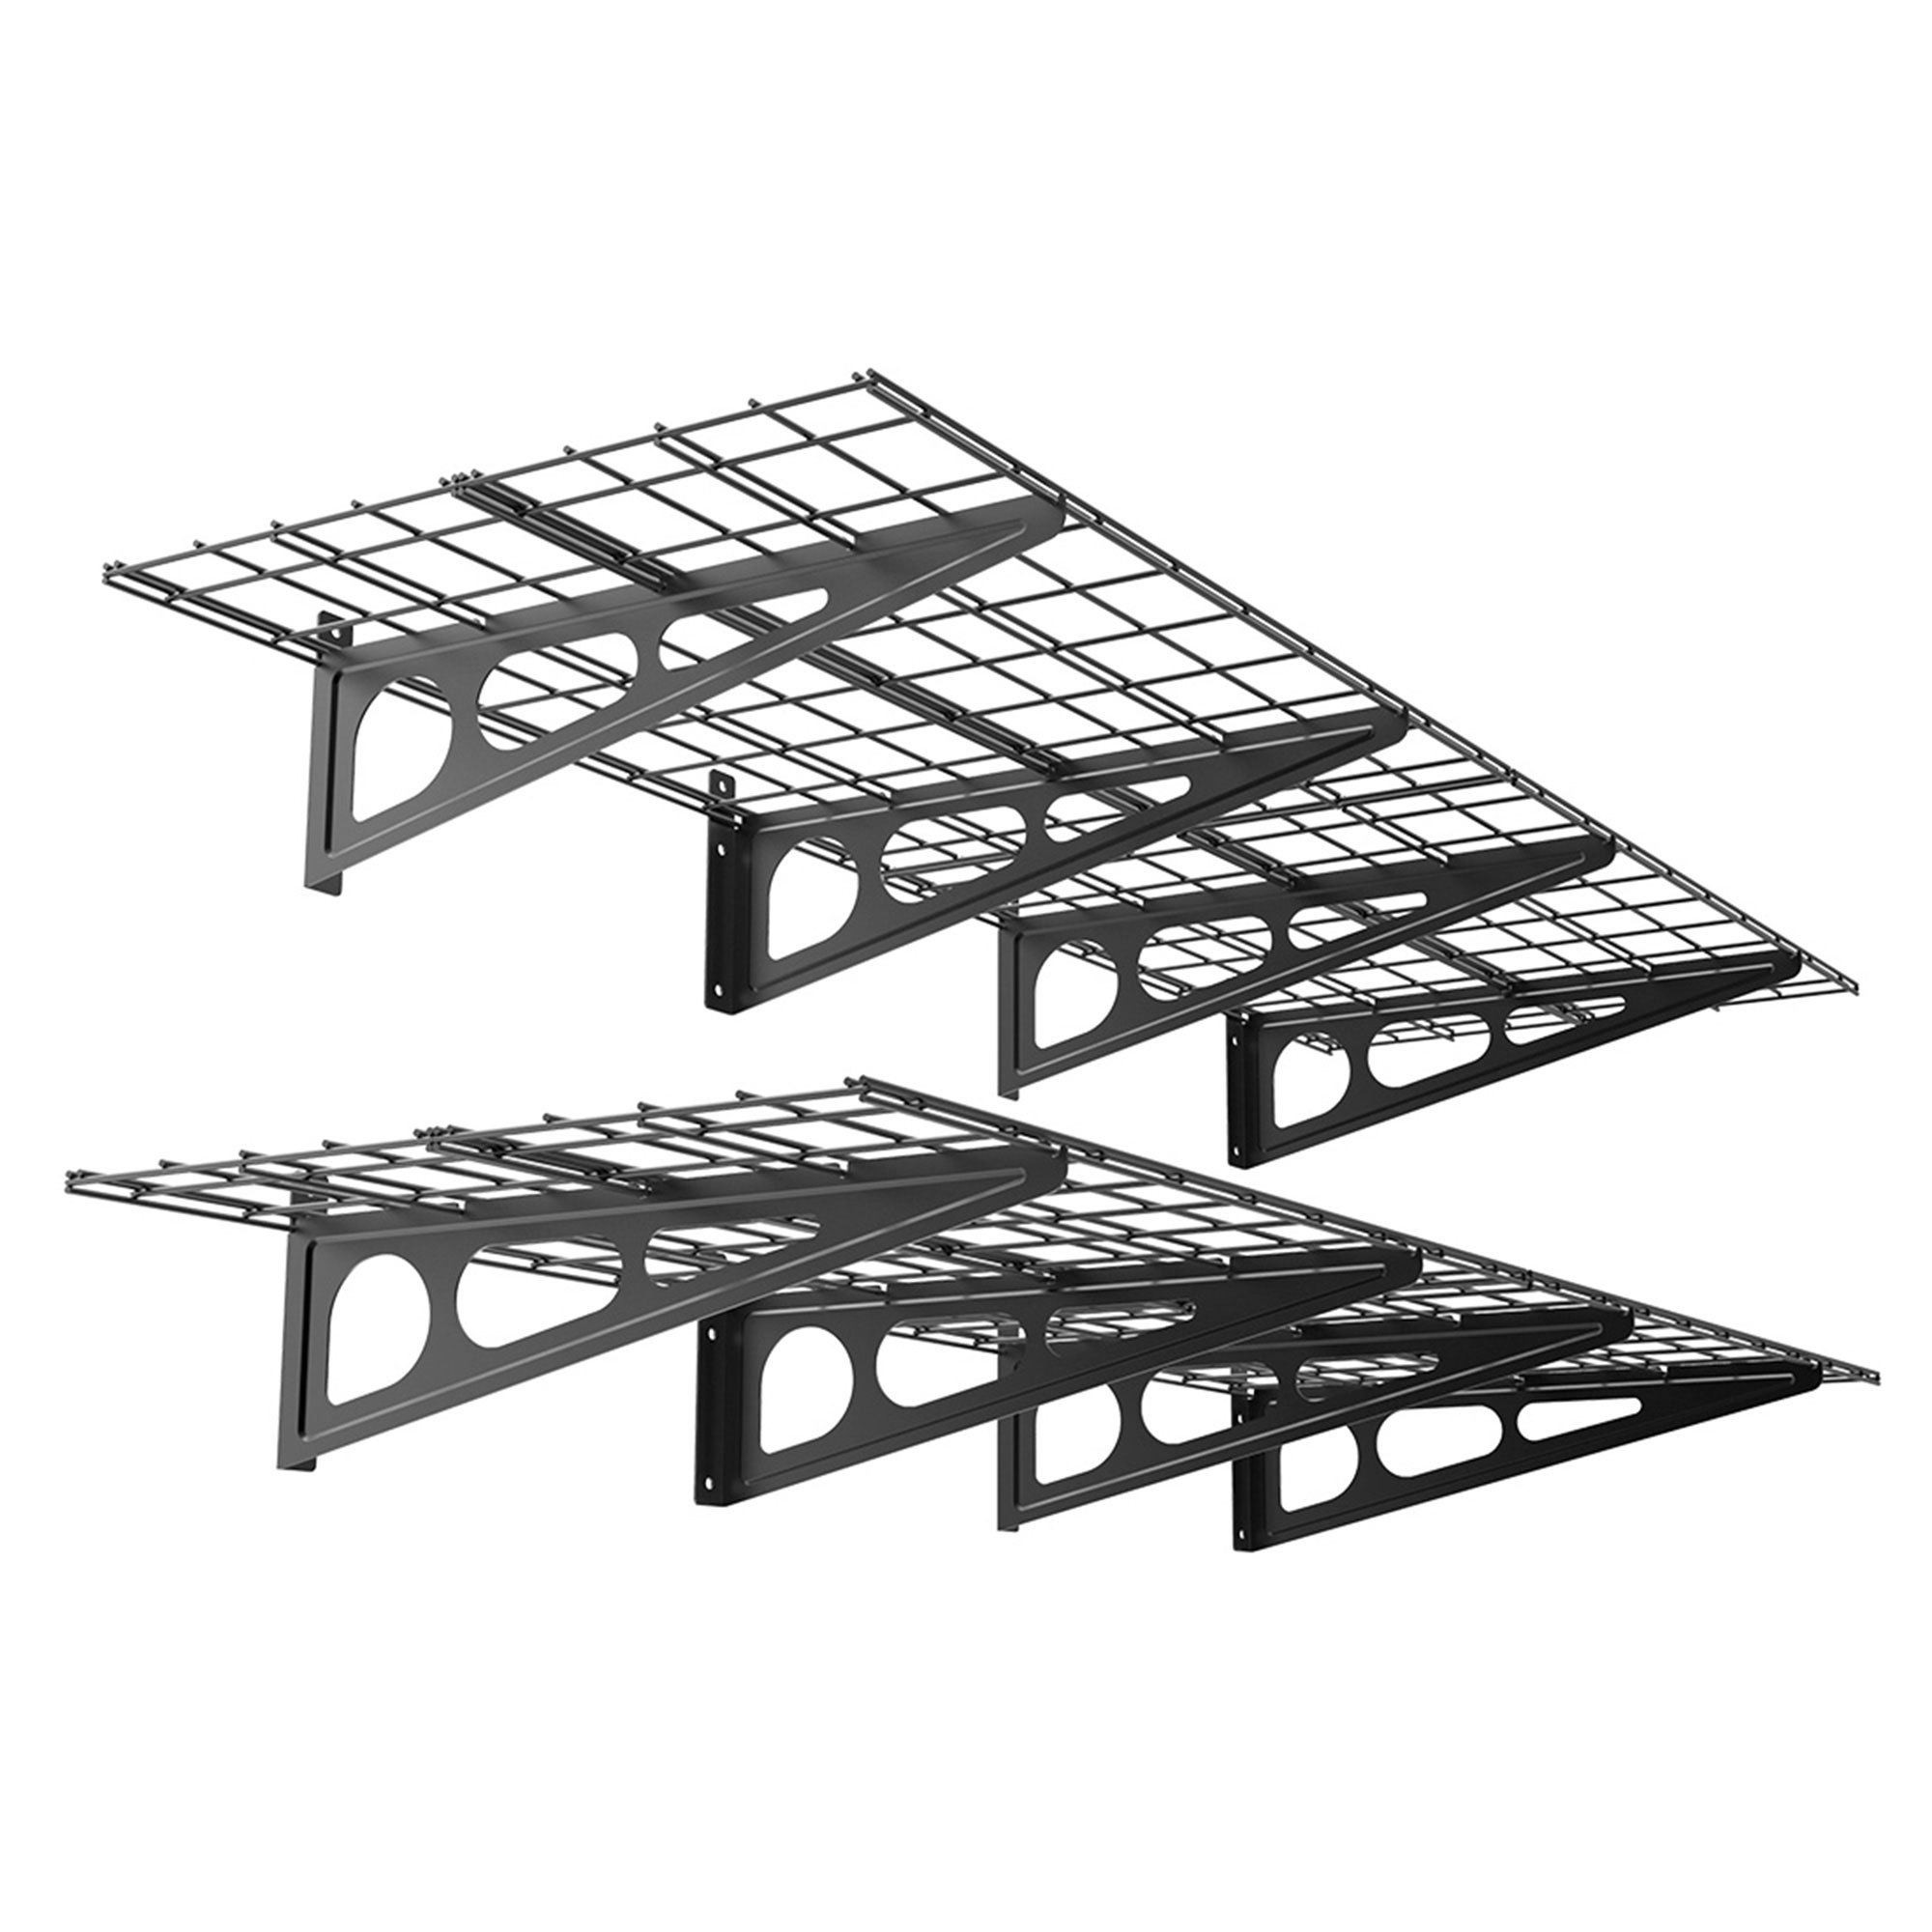 FLEXIMOUNTS 2-Pack 2x6ft 24-inch-by-72-inch Wall Shelf Garage Storage Rack Floating Shelves, Black